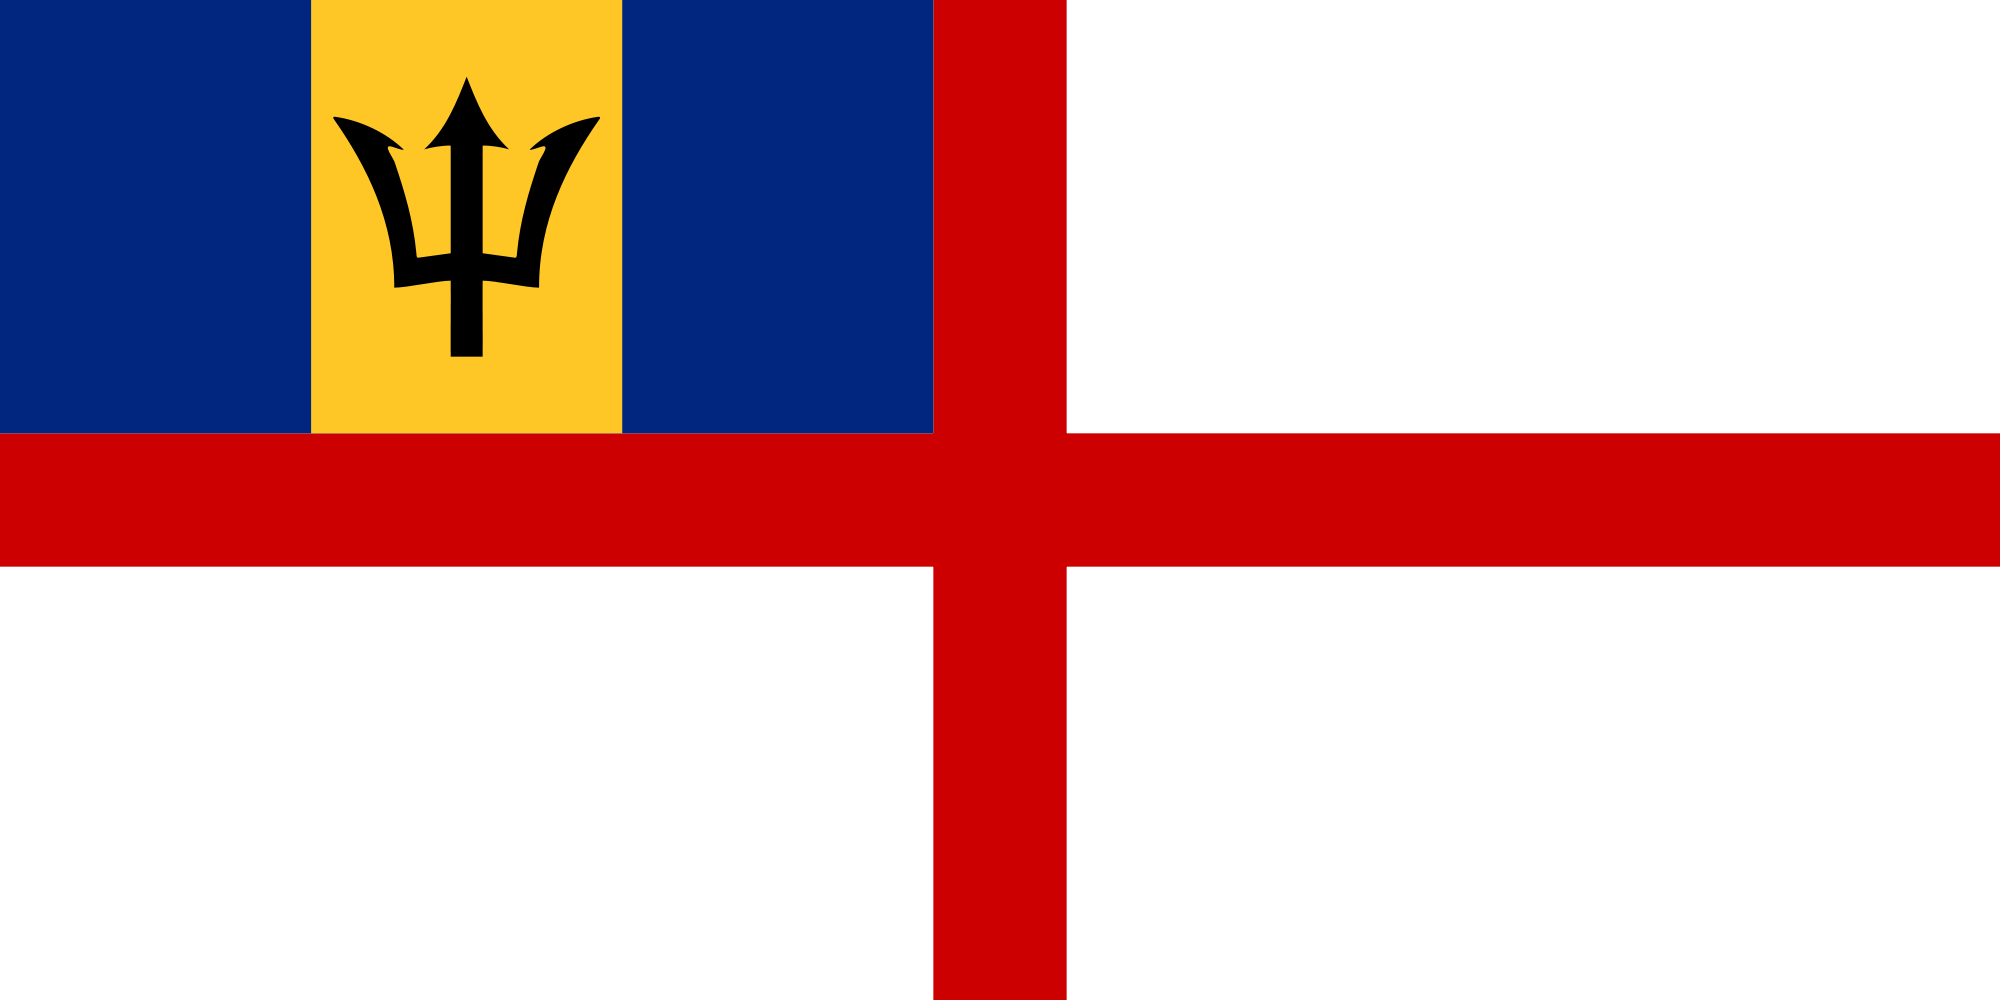 Barbados (Naval ensign)